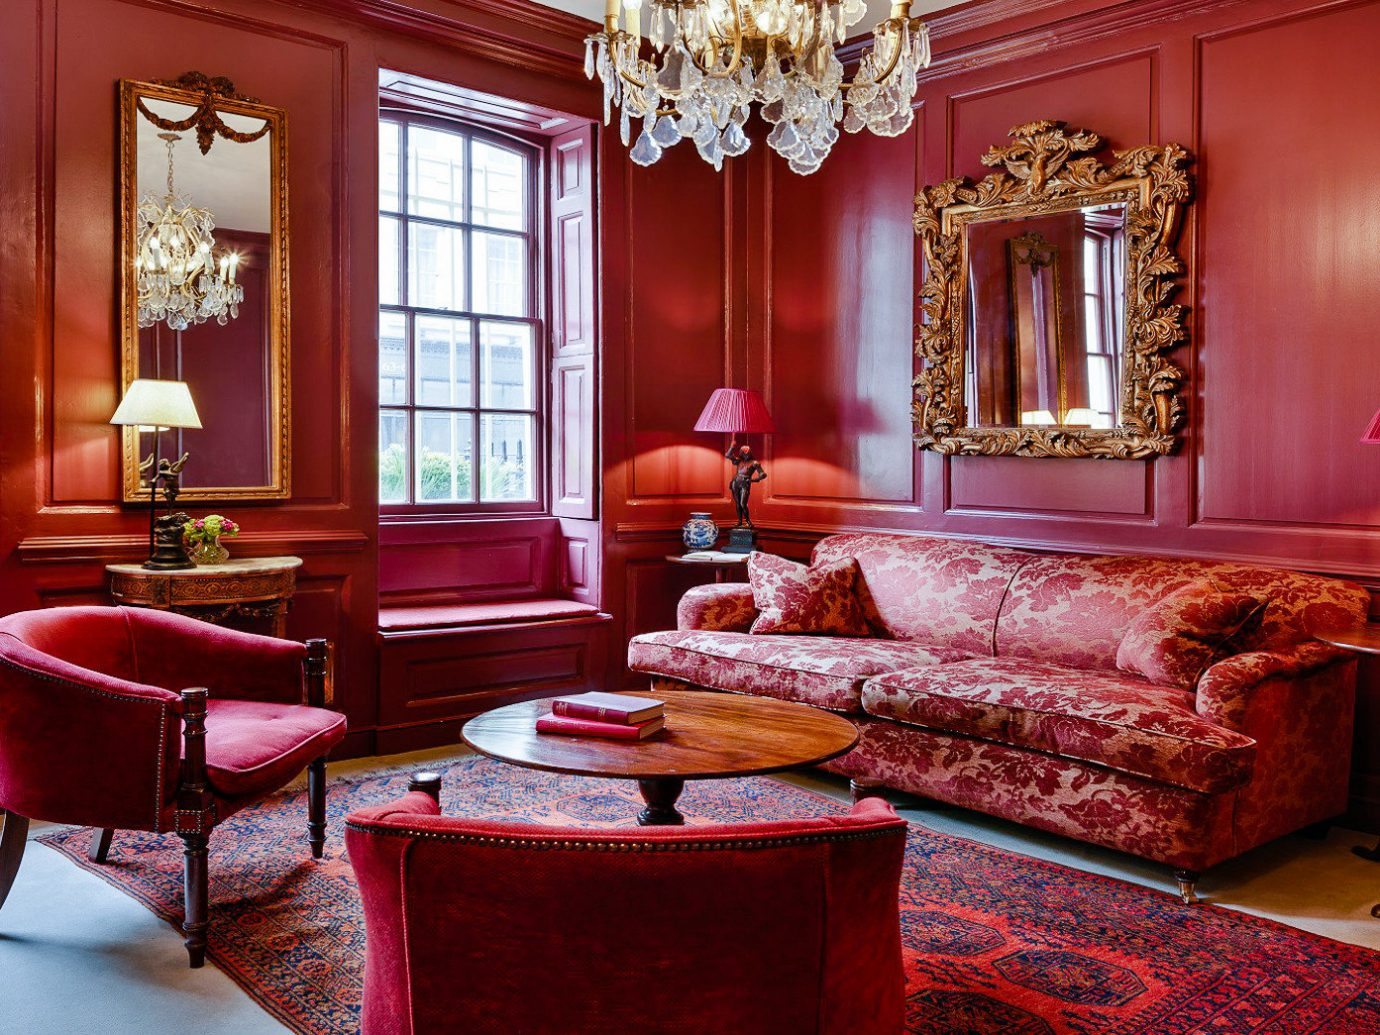 Boutique Hotels London Romantic Hotels indoor floor room Living window red sofa wall living room chair interior design furniture home couch decorated Suite table rug Lobby estate bright colorful colored leather